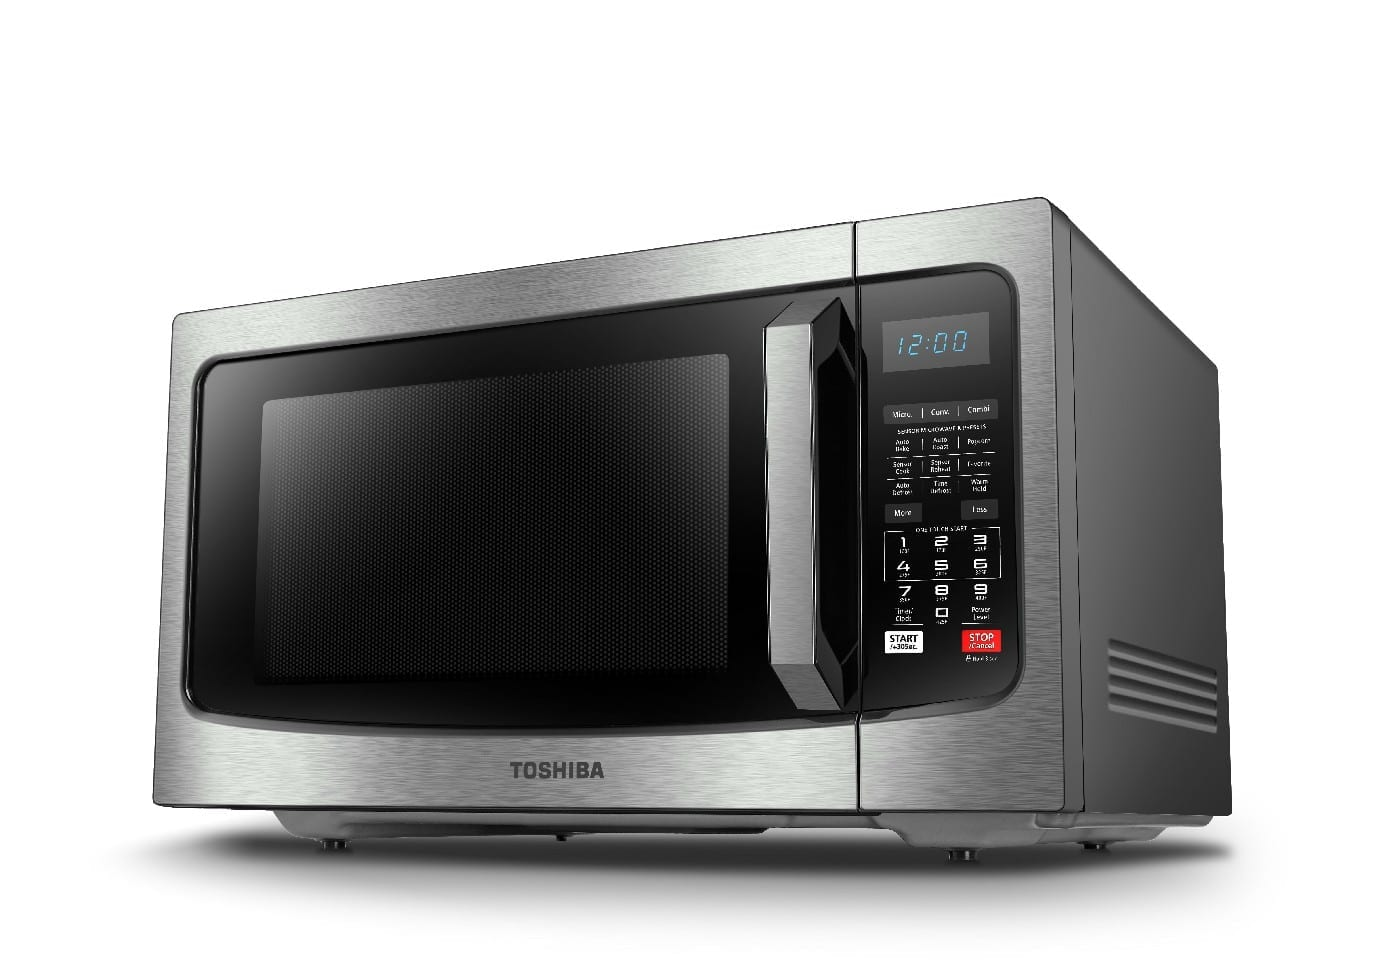 Toshiba Microwave  42L Convection Microwave10 Auto Cook Menu 11 Power Level Membrane Control Microwave Power (W): 1000 Grill Power (W): 1100 Available In Black Stainless Steel